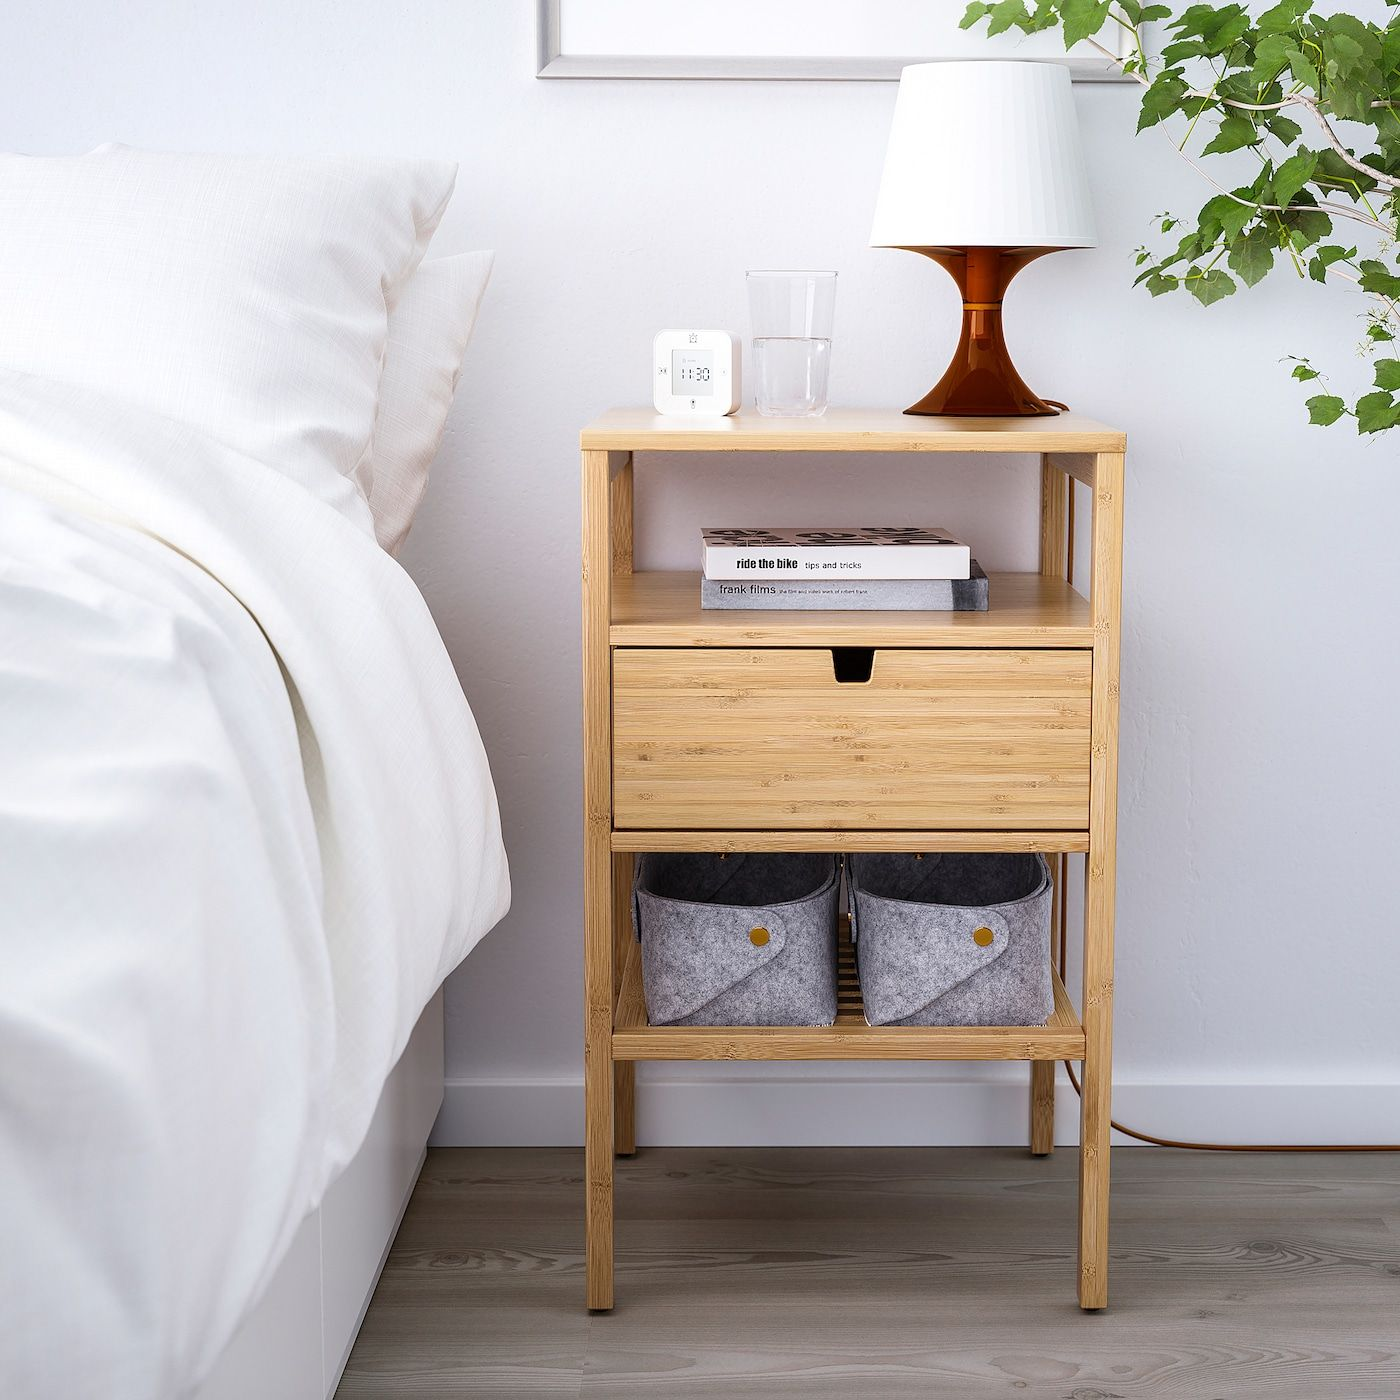 Nordkisa Bedside Table Bamboo 40x40 Cm Ikea Bedroom Furniture